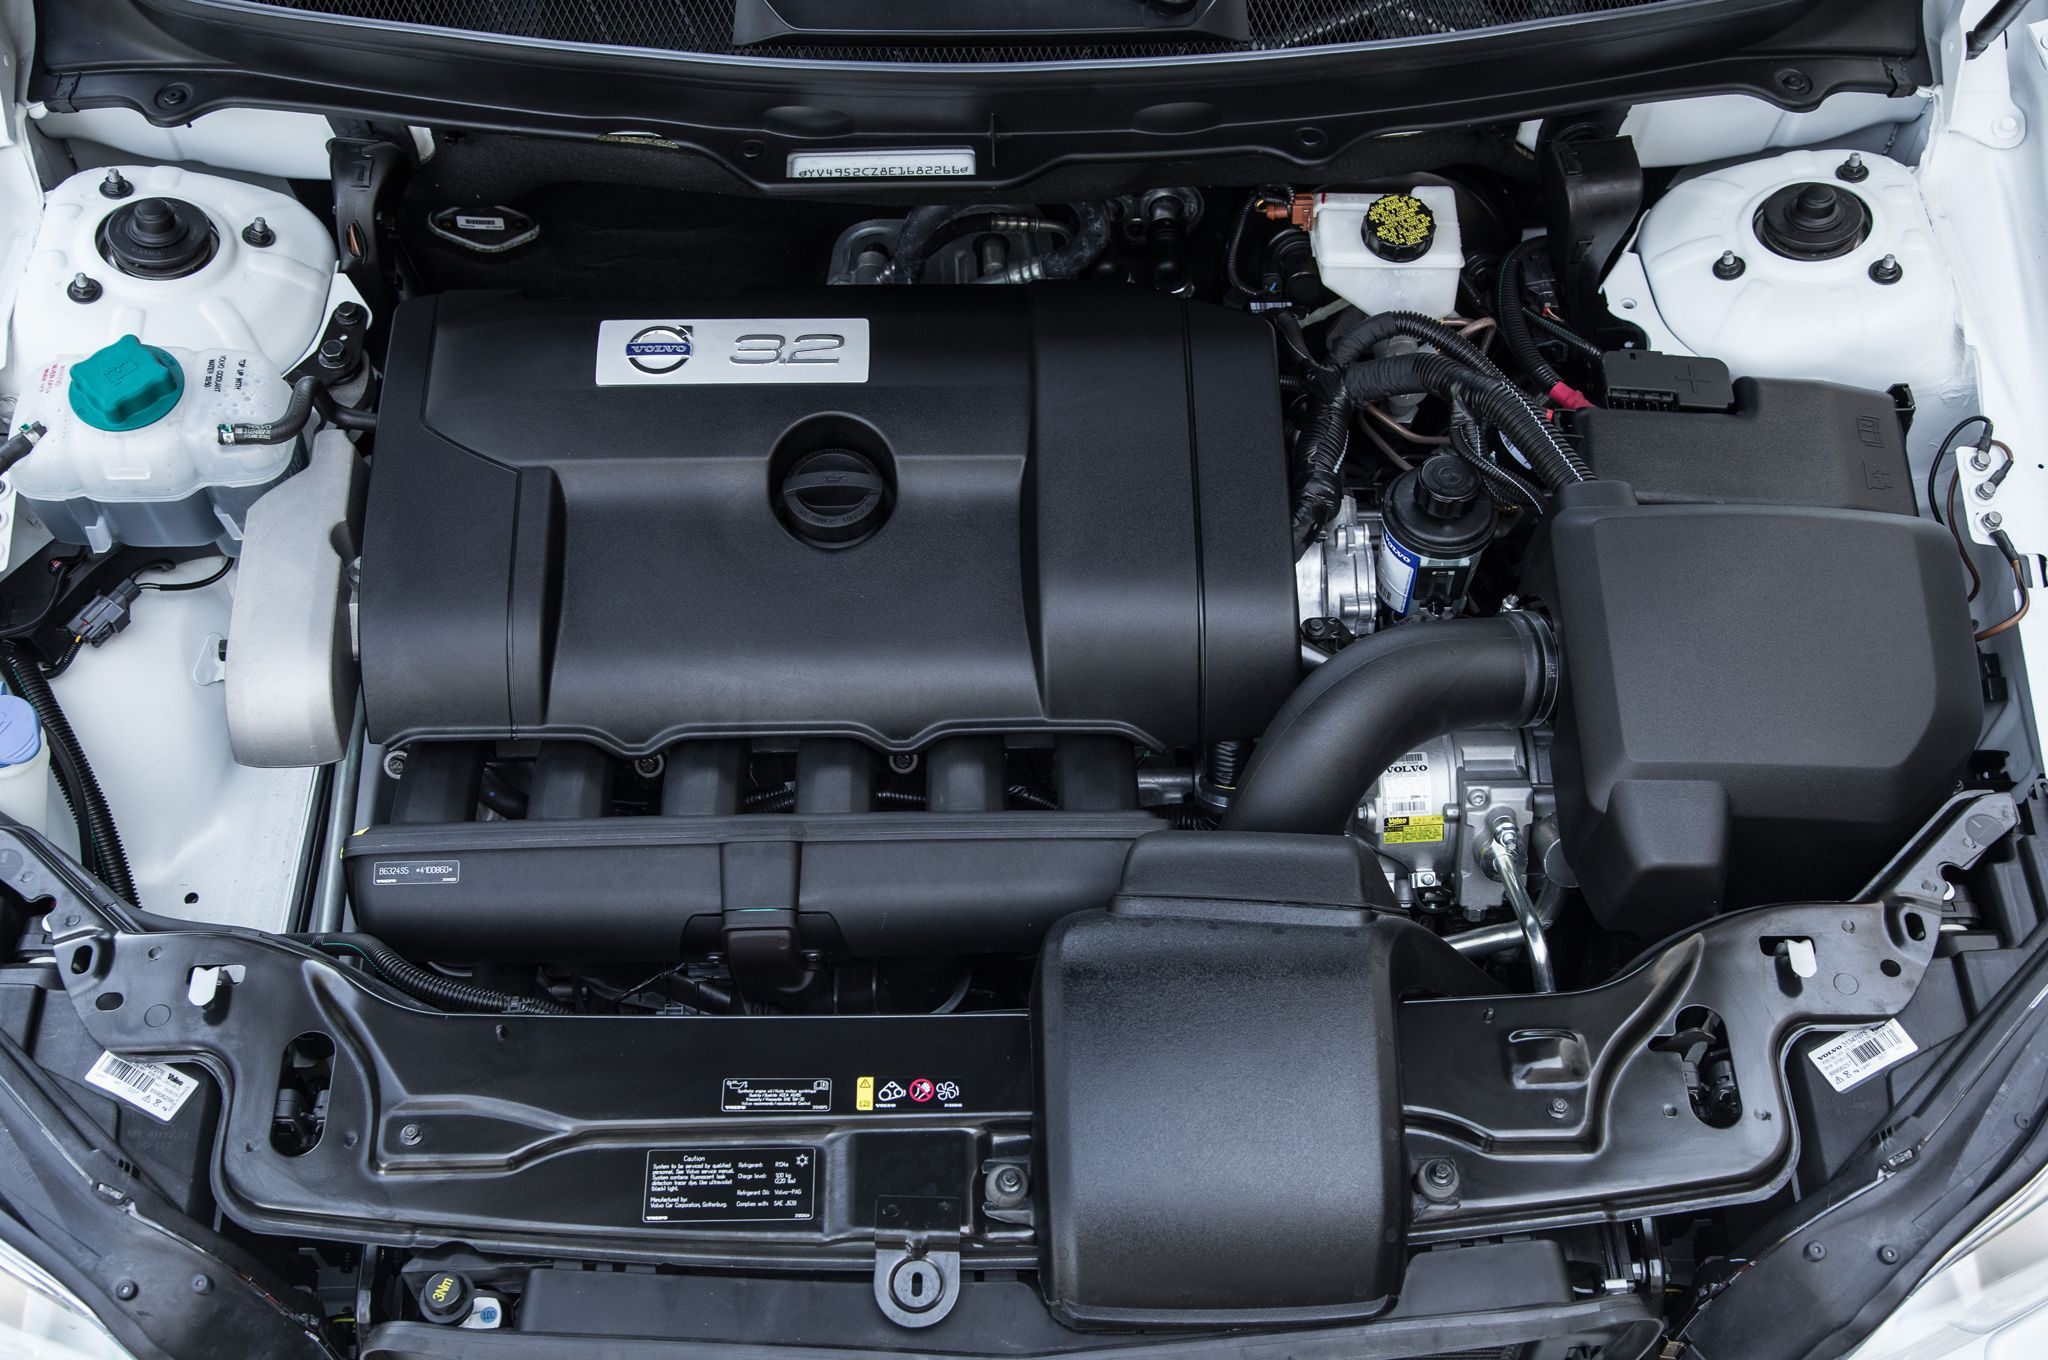 2017 Volvo Xc90 Engine